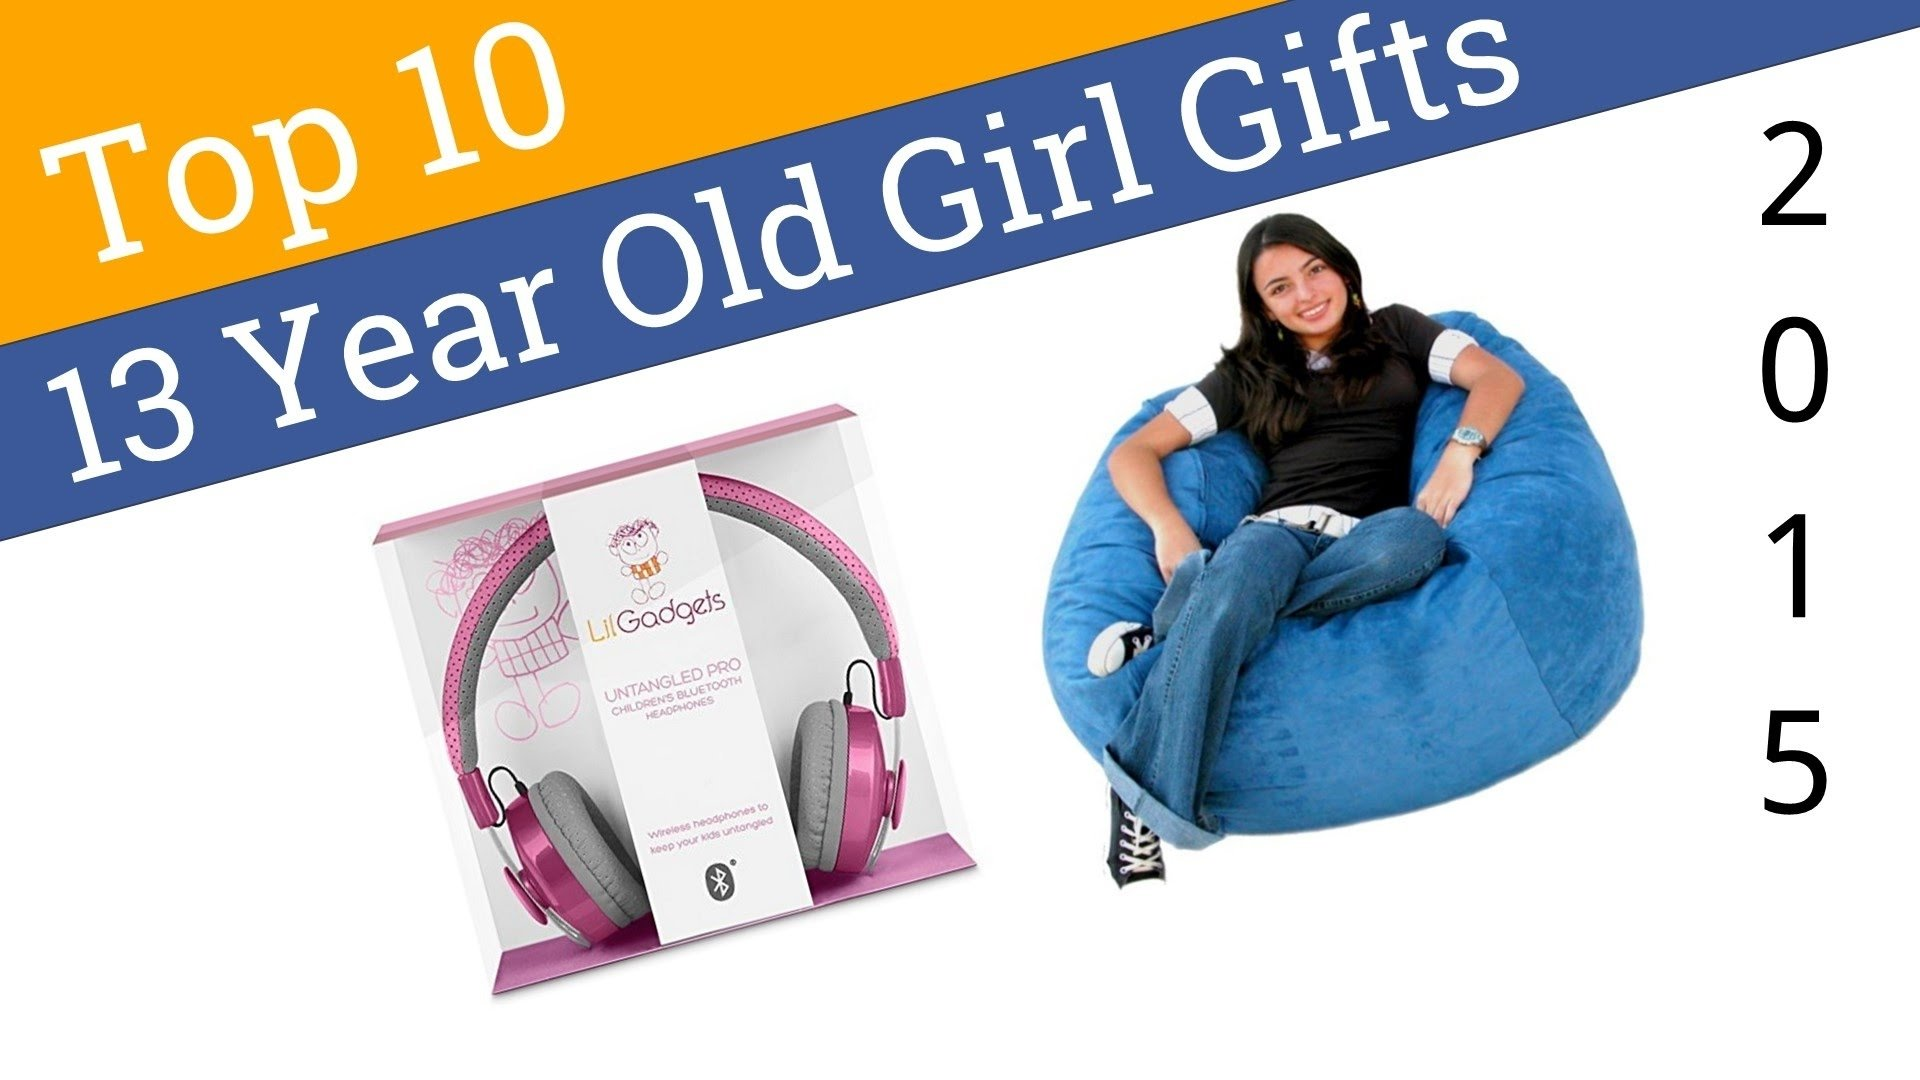 10 Most Recommended Birthday Gift Ideas For 13 Year Old Girl 10 best 13 year old girl gifts 2015 youtube 6 2021